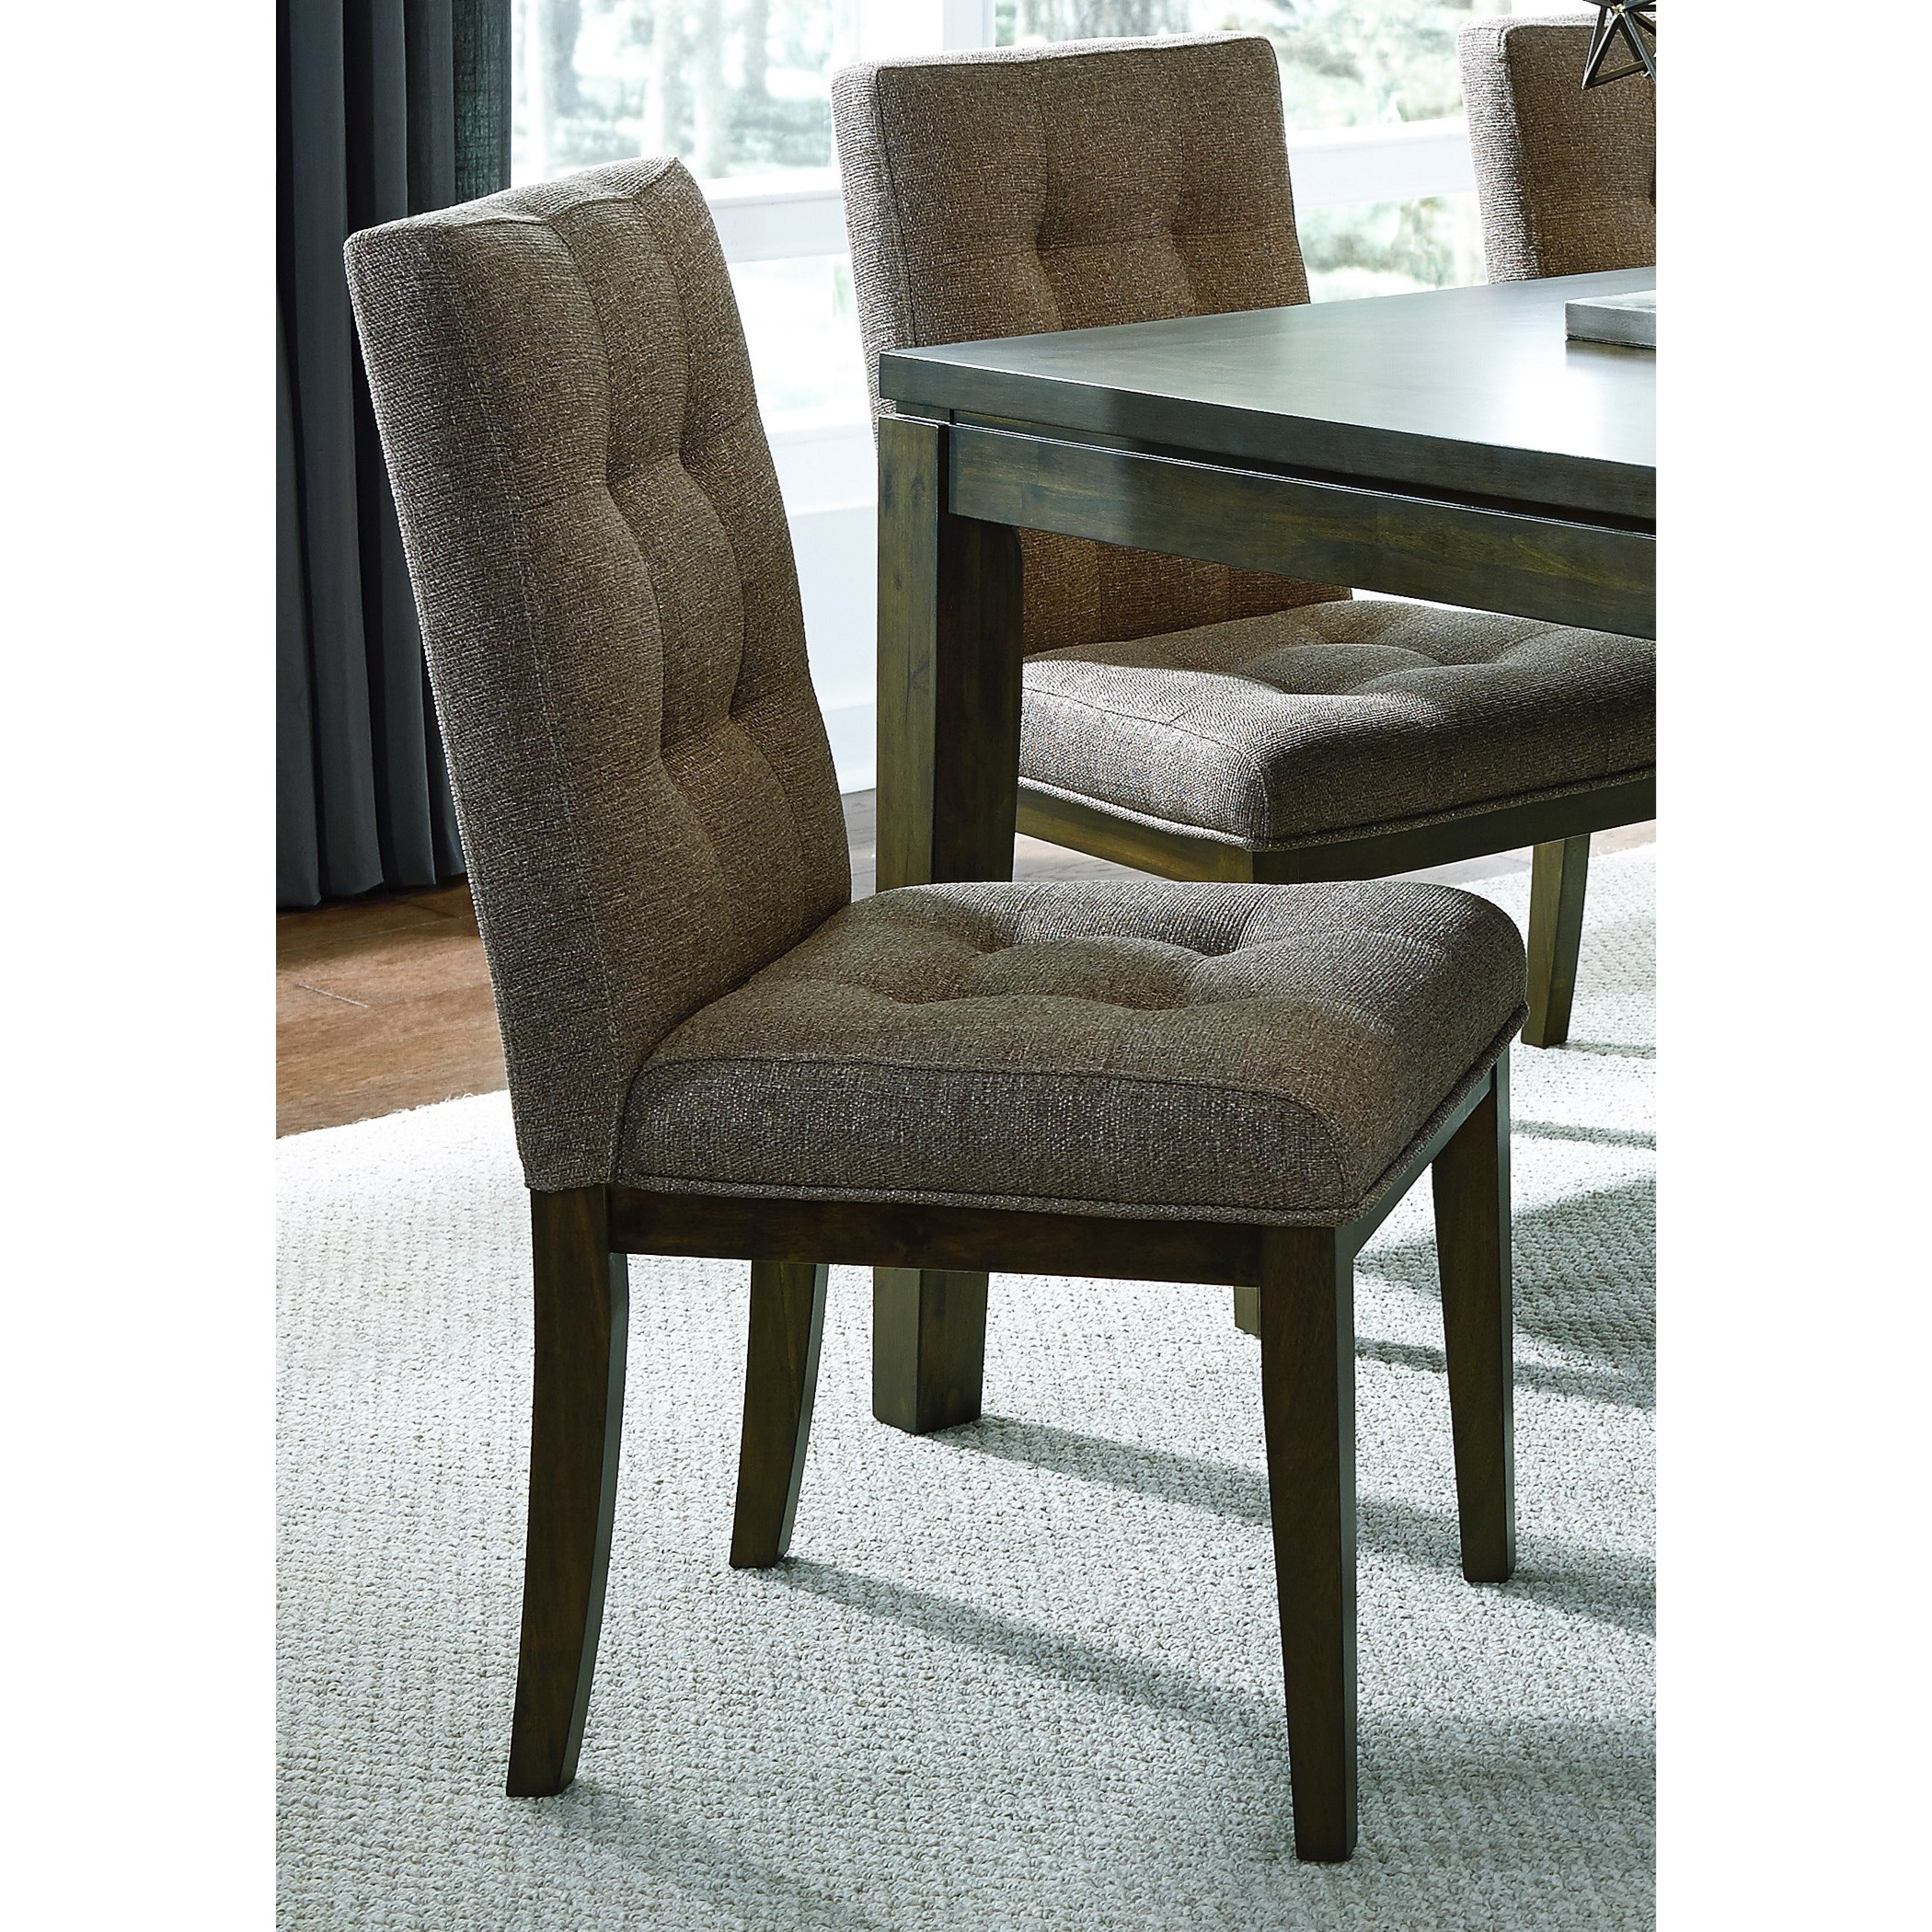 Liberty furniture belden place 321 c6501 contemporary for Furniture 321